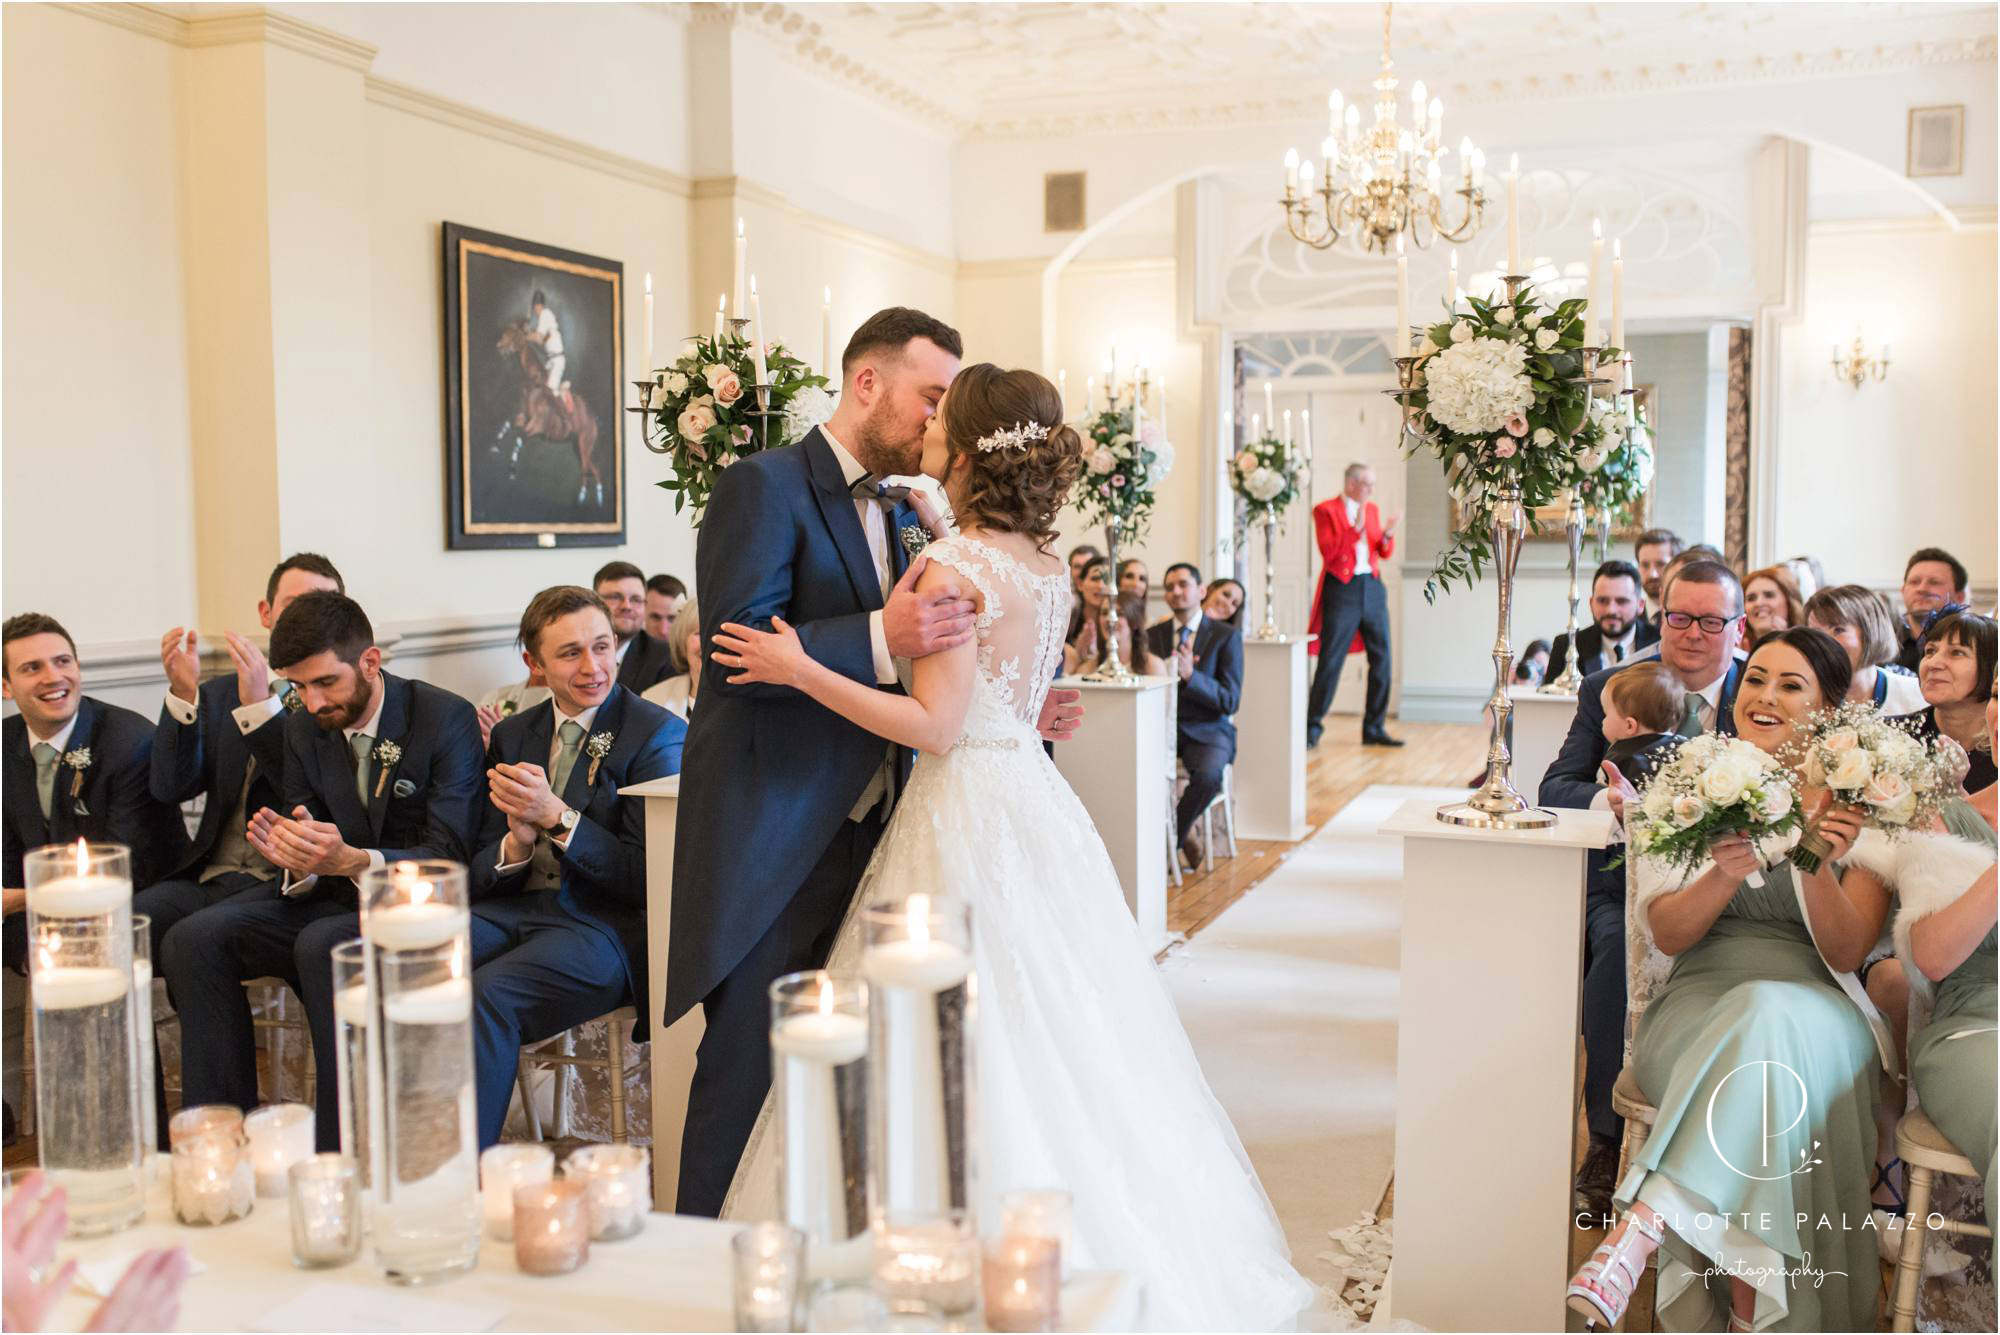 Kirst_Peter_Snowy_Nunsmere_Hall_Winter_Wedding_Cheshire_Photographer_0012.jpg